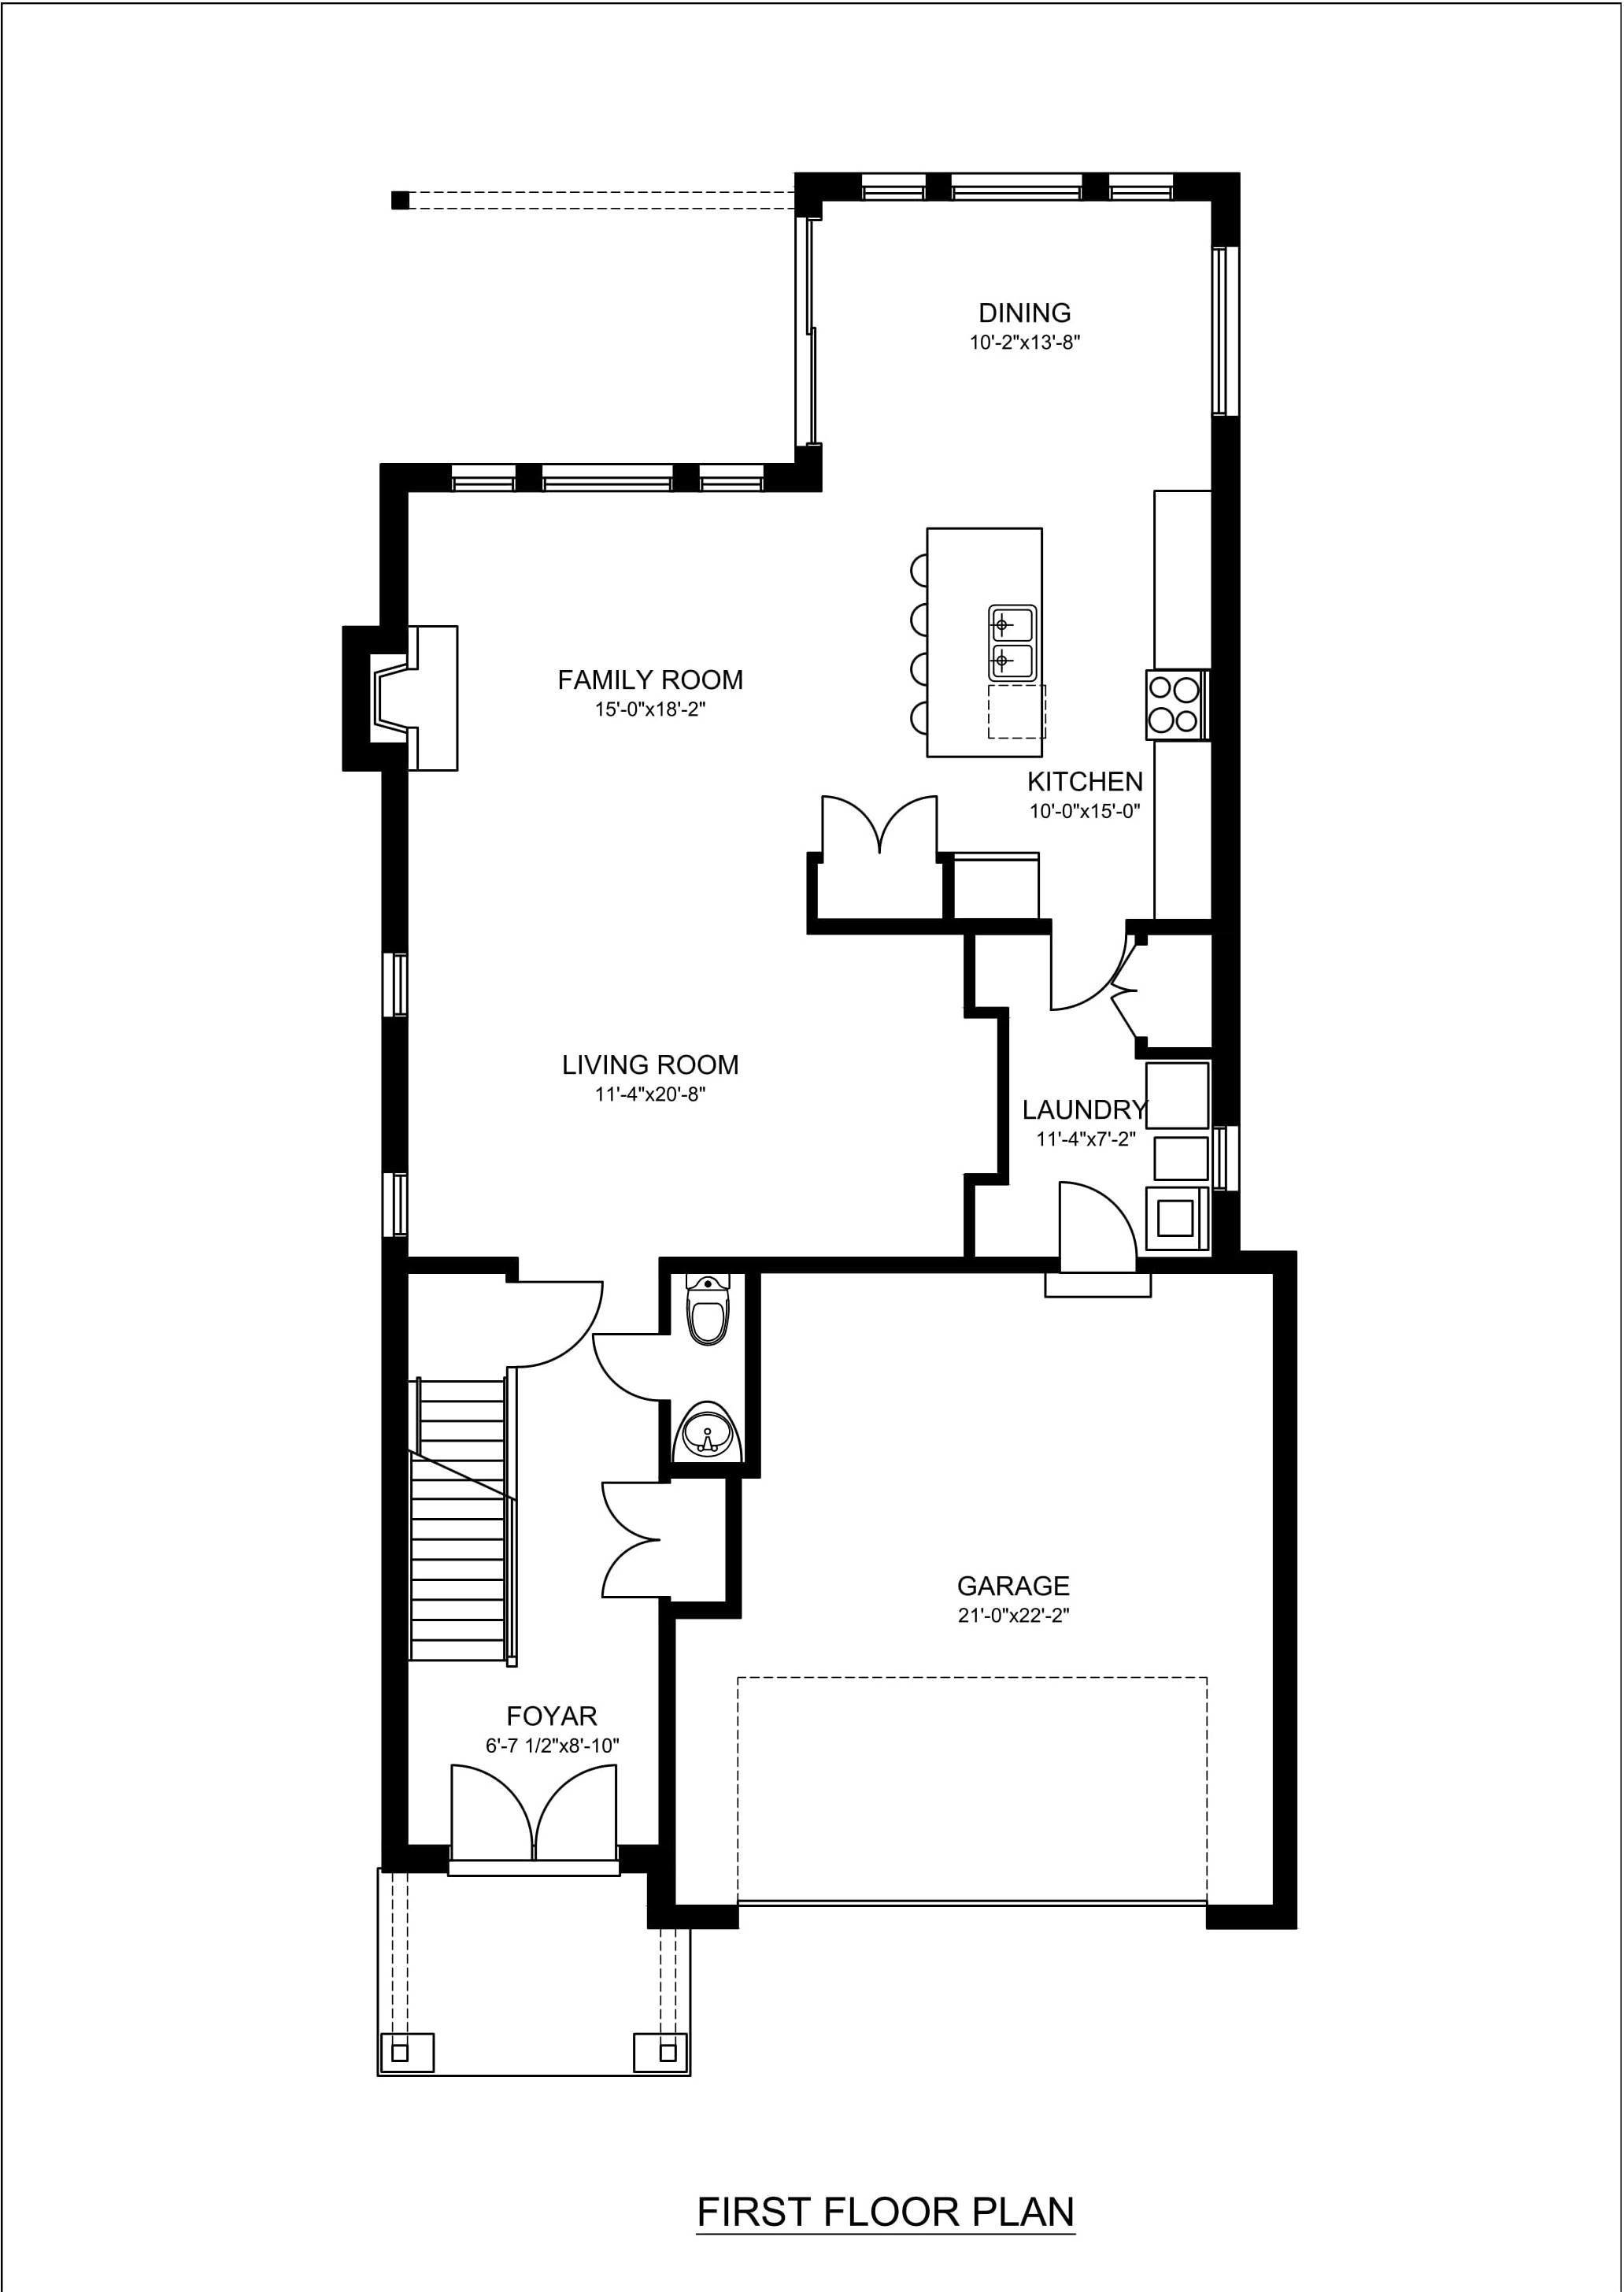 Best Samples Floor Plan For Real Estate With Pictures